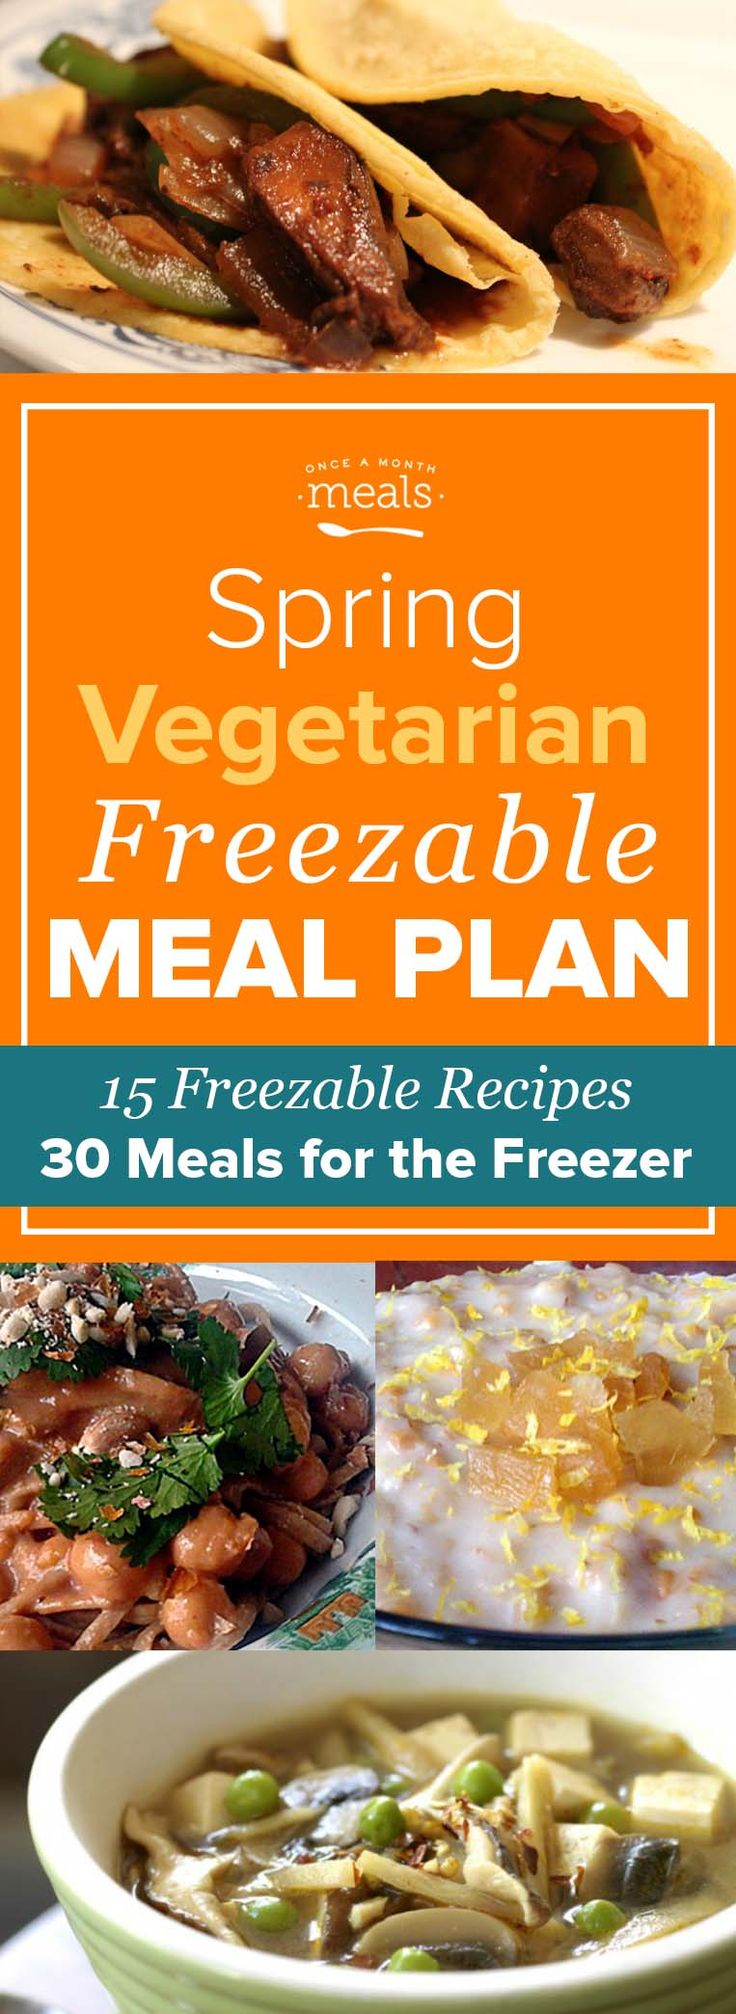 """This Spring Vegetarian Freezer Menu keeps things simple with plenty of easy assembly or """"throw and go"""" freezer meals, but still celebrates seasonal tastes with spirit. Spinach, broccoli, and asparagus all make appearances and bring a verdant liveliness to these vegetable-centric recipes."""